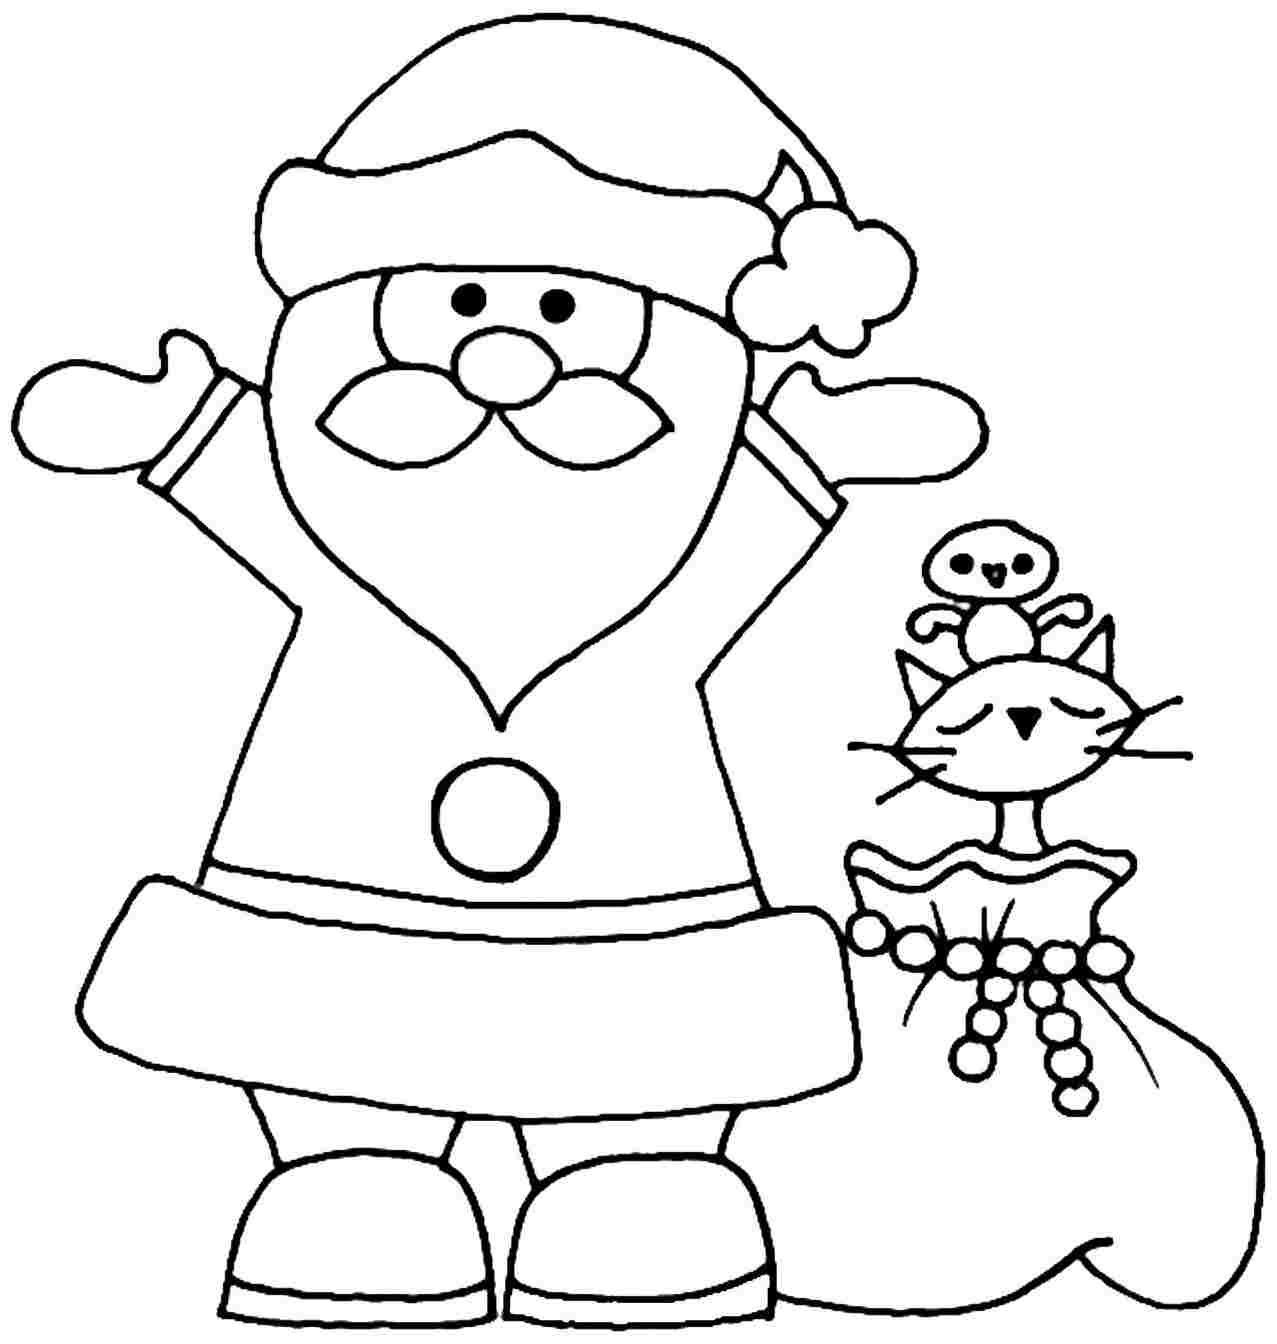 Santa Claus Coloring In With Pin By Shreya Thakur On Free Pages Pinterest